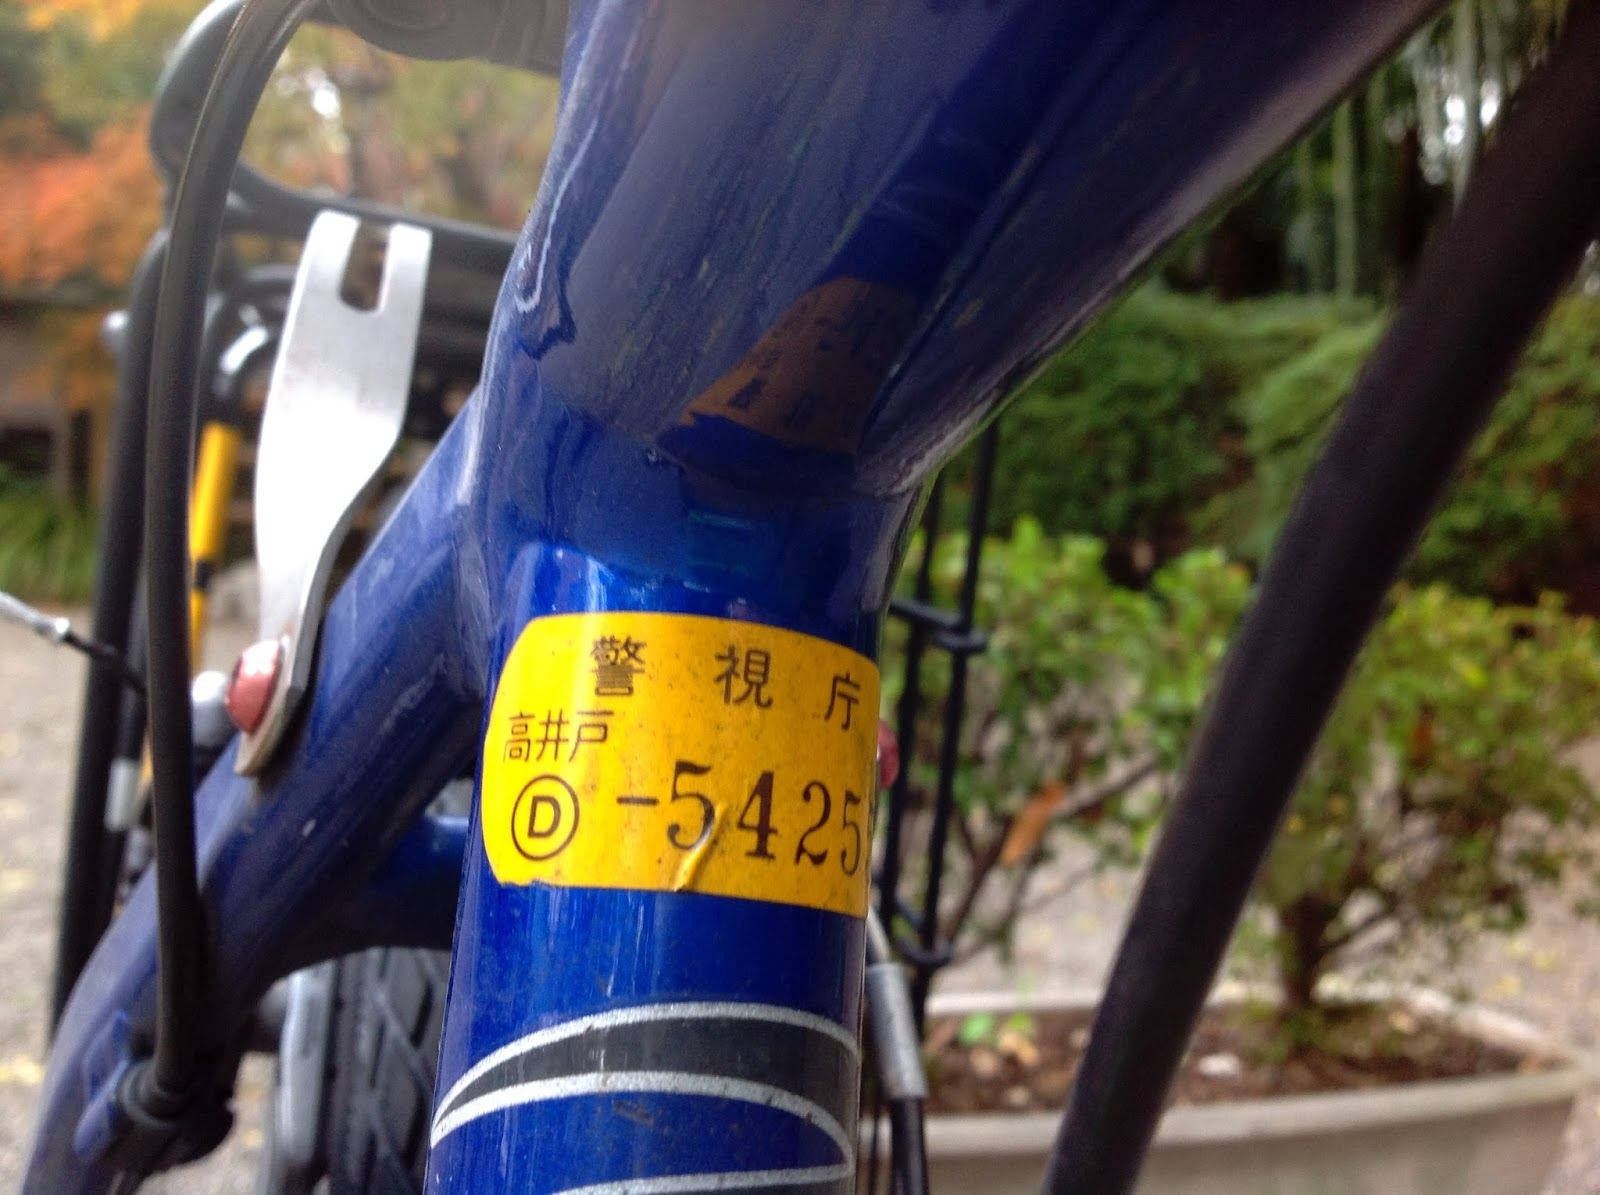 Japanese bicycle registration sticker